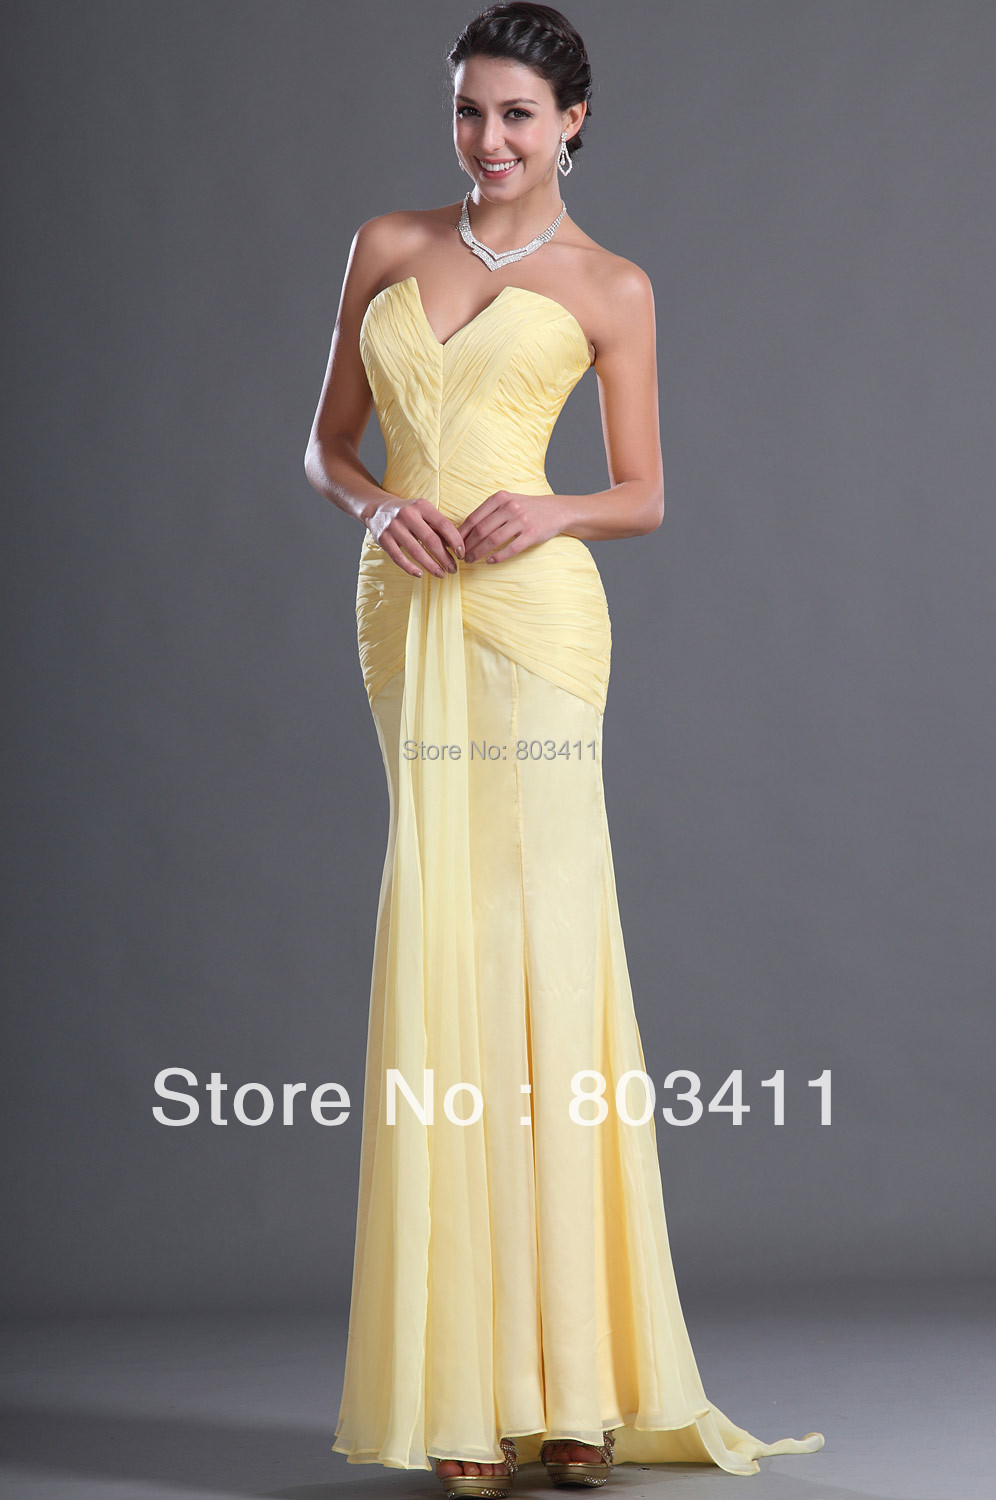 Free Shipping New Arrival Pretty Strapless Notched Neckline Pleated Yellow Chiffon Evening Dress